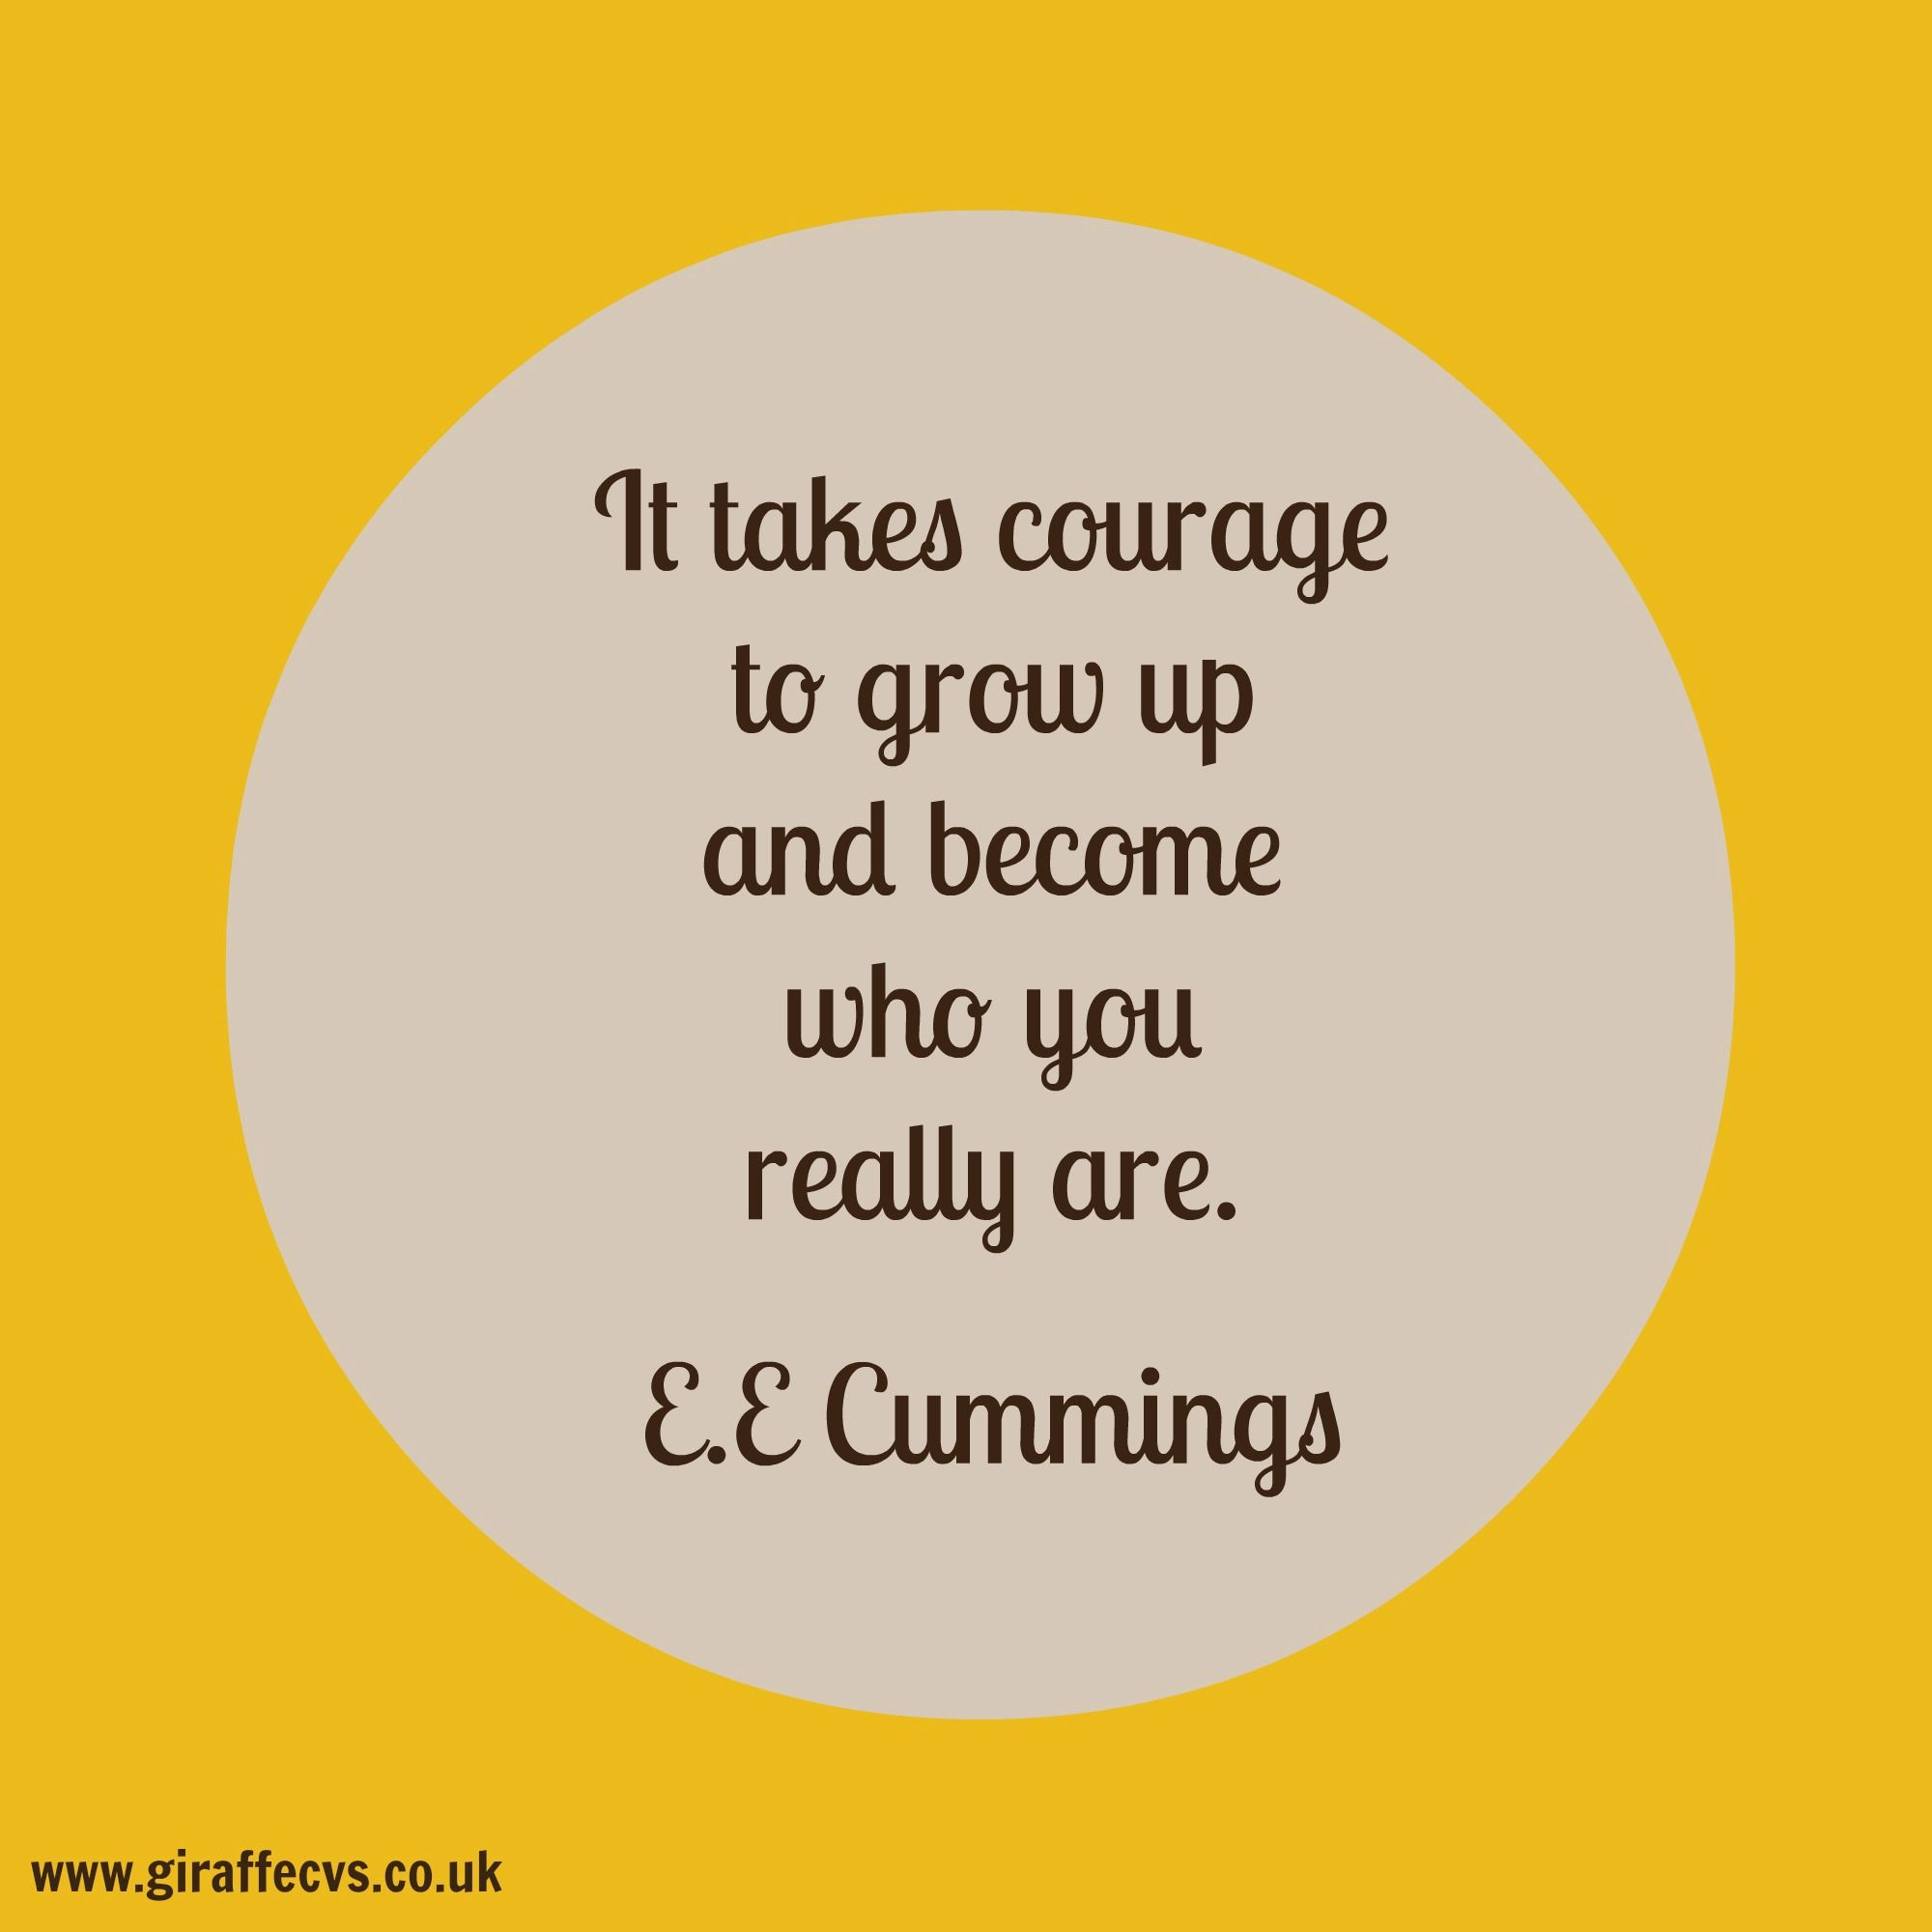 Are you courageous? Cv writing service, Career quotes